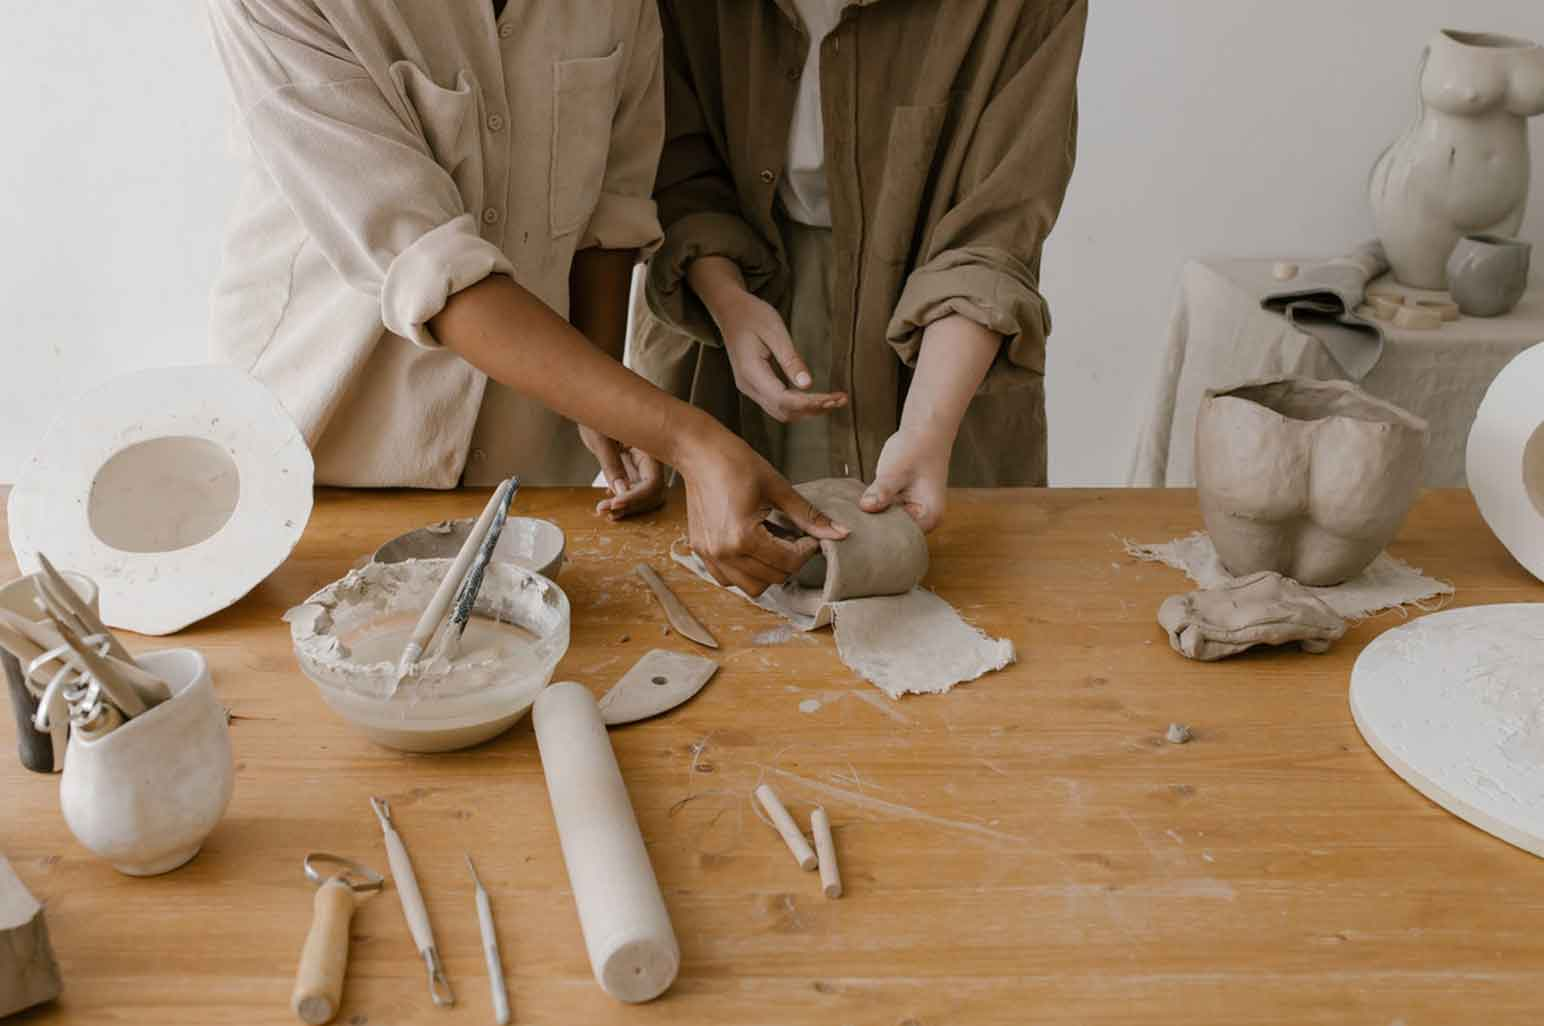 Want to Get into Clay Sculpting? Here's What You Need